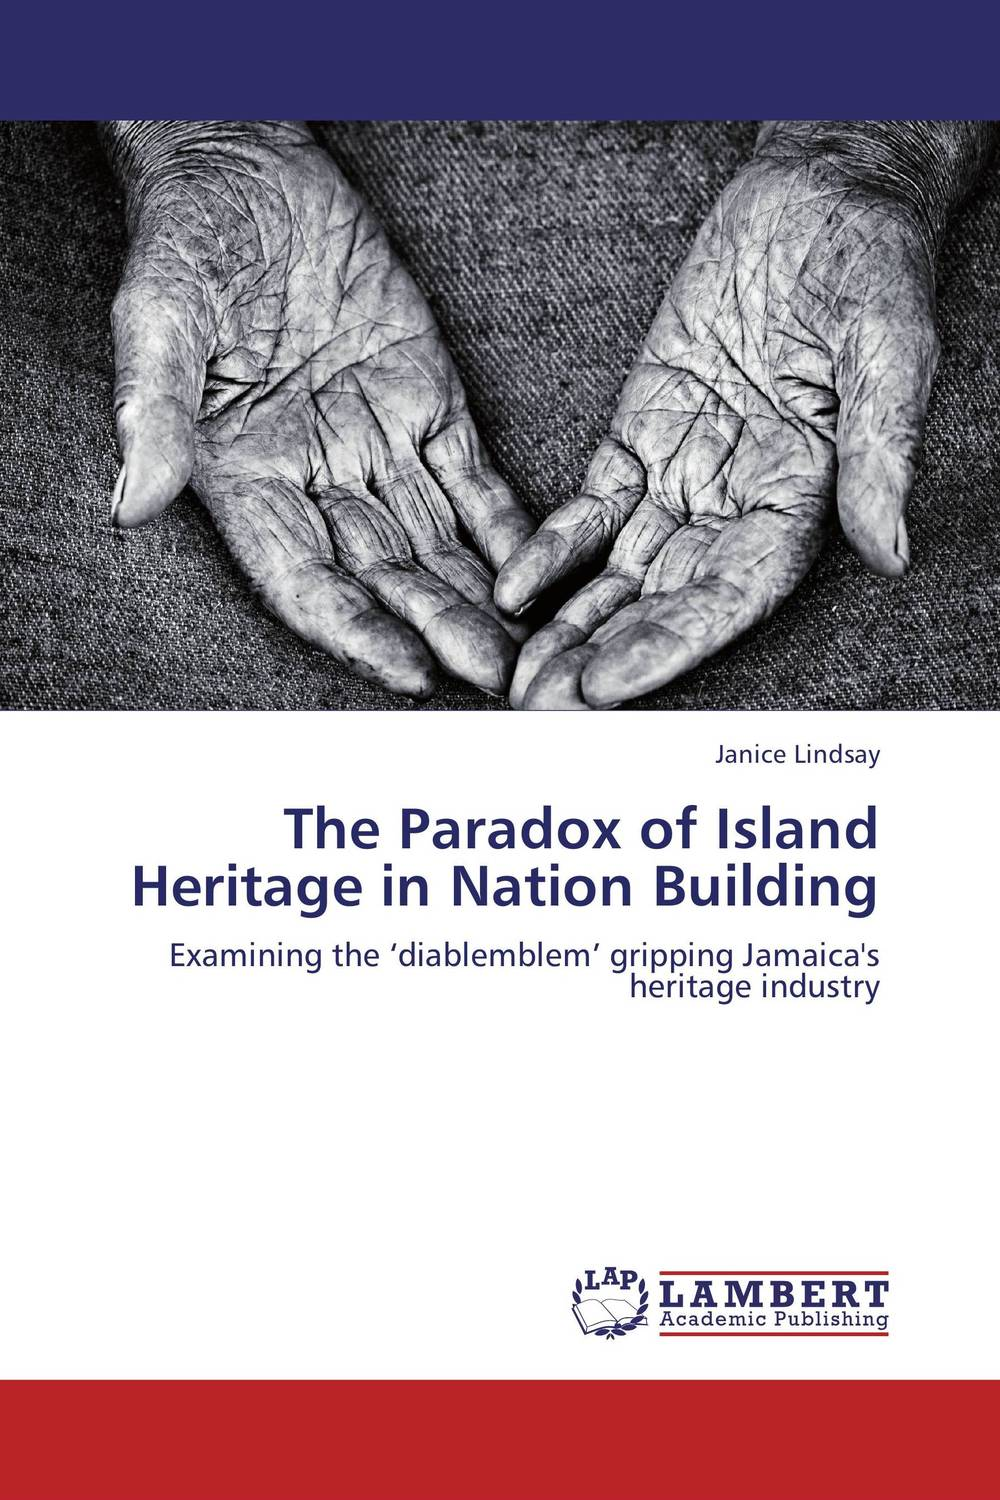 The Paradox of Island Heritage in Nation Building the small island paradox